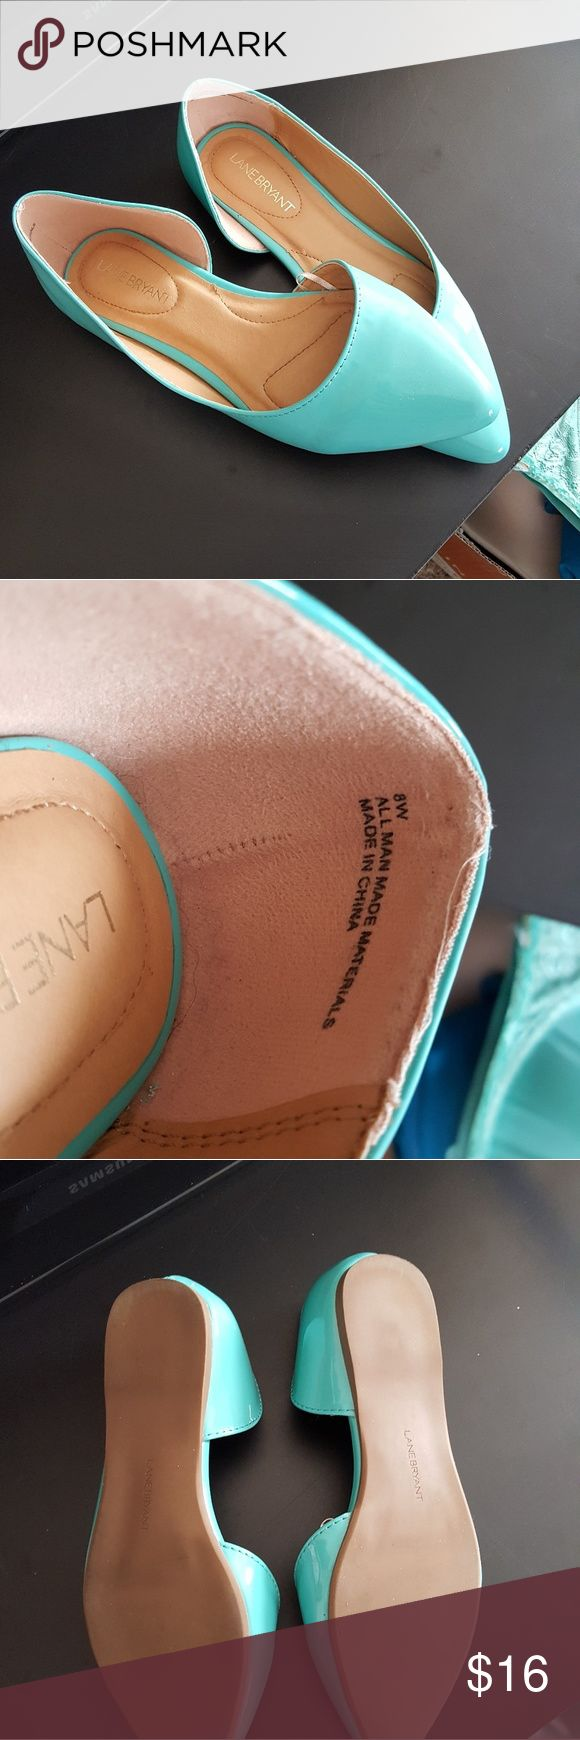 Like New Teal Flats Gorgeous color.  Worn only once.  Wide foot size. Lane Bryant Shoes Flats & Loafers